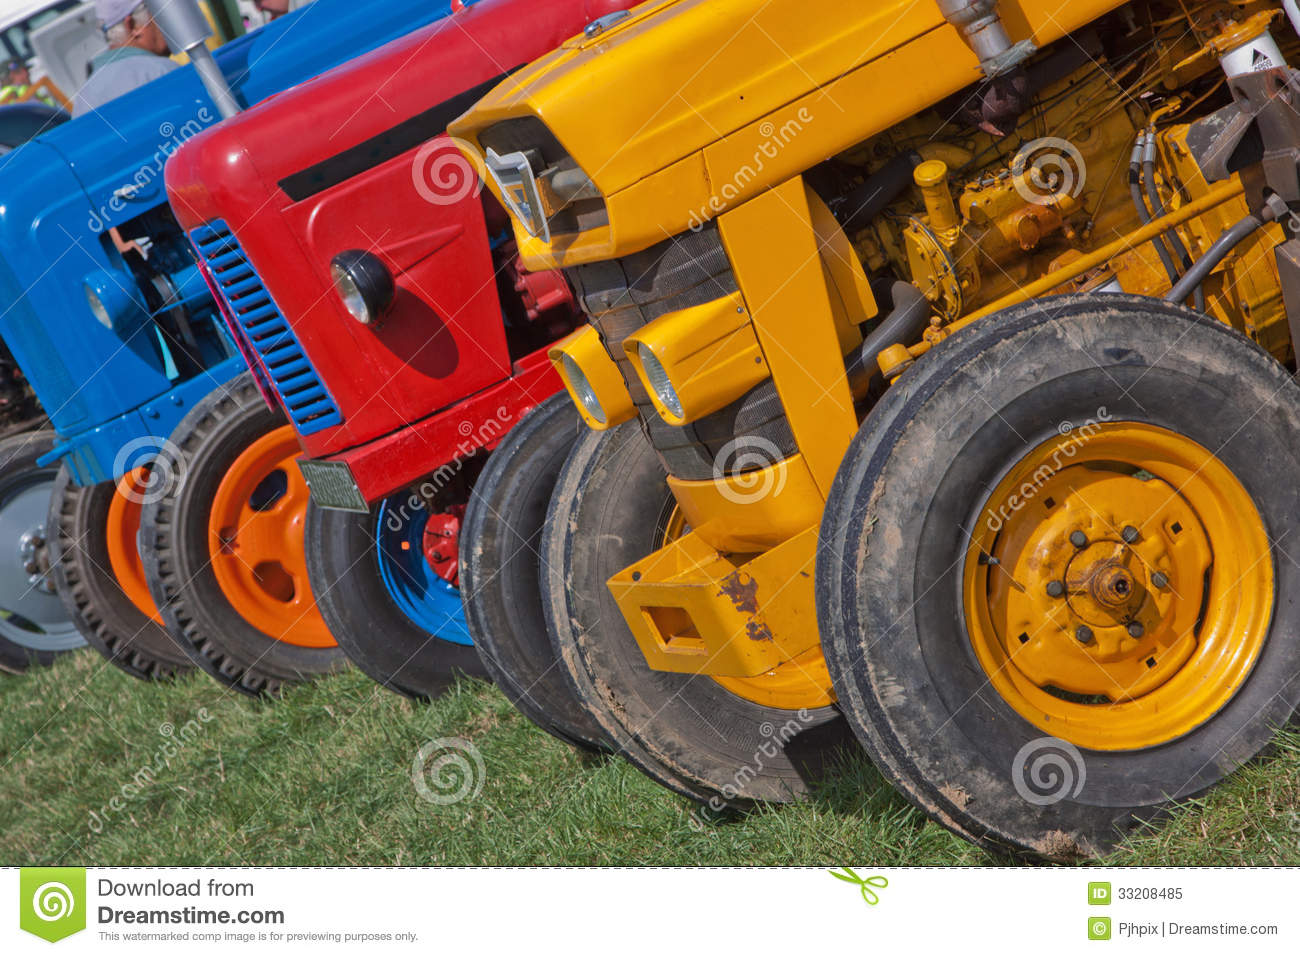 Up The Tractor Green Tractor With Bucket Cartoon : Old tractor colour royalty free cartoon cartoondealer